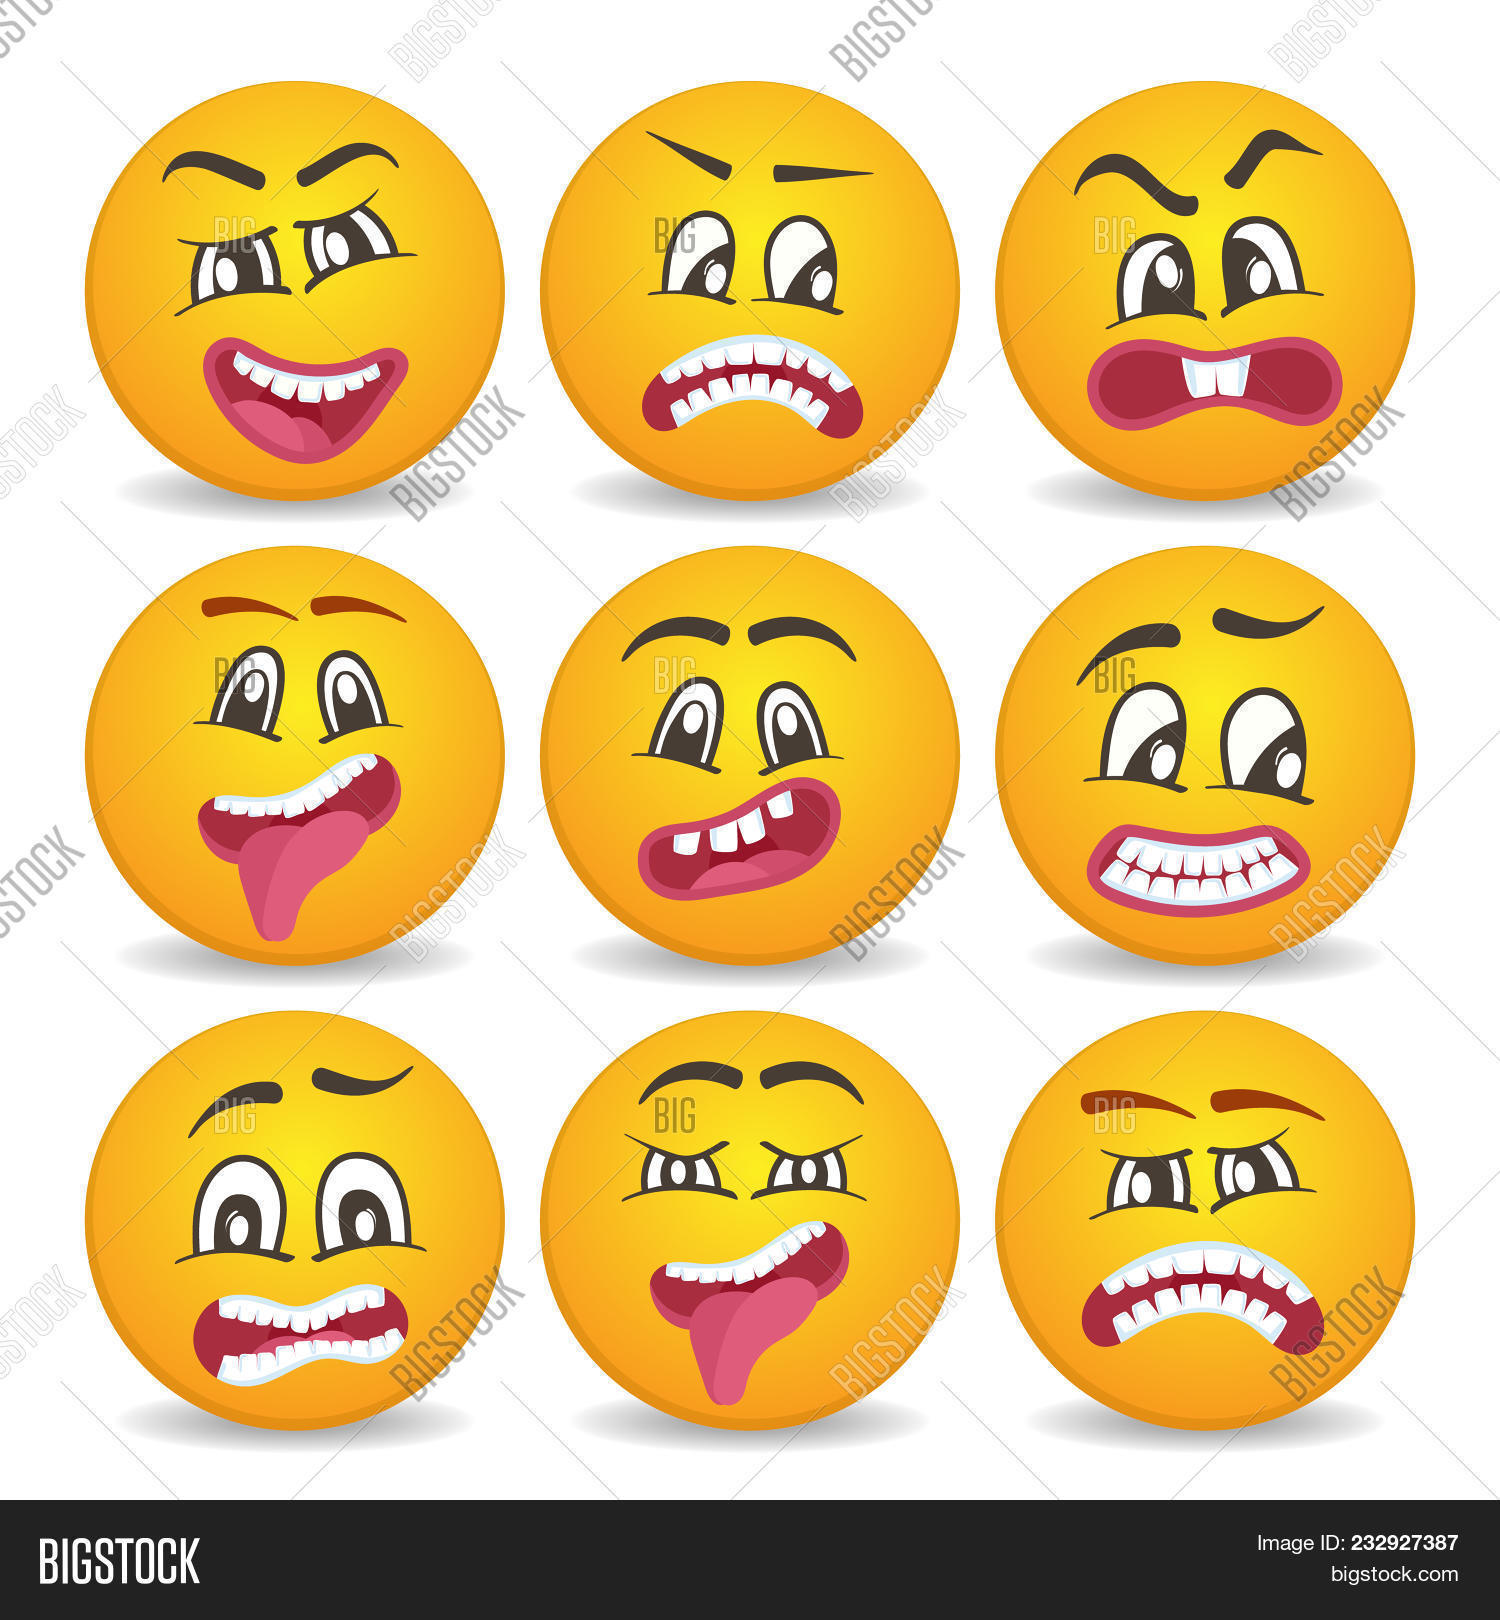 Cute Smiley Faces Image Photo Free Trial Bigstock